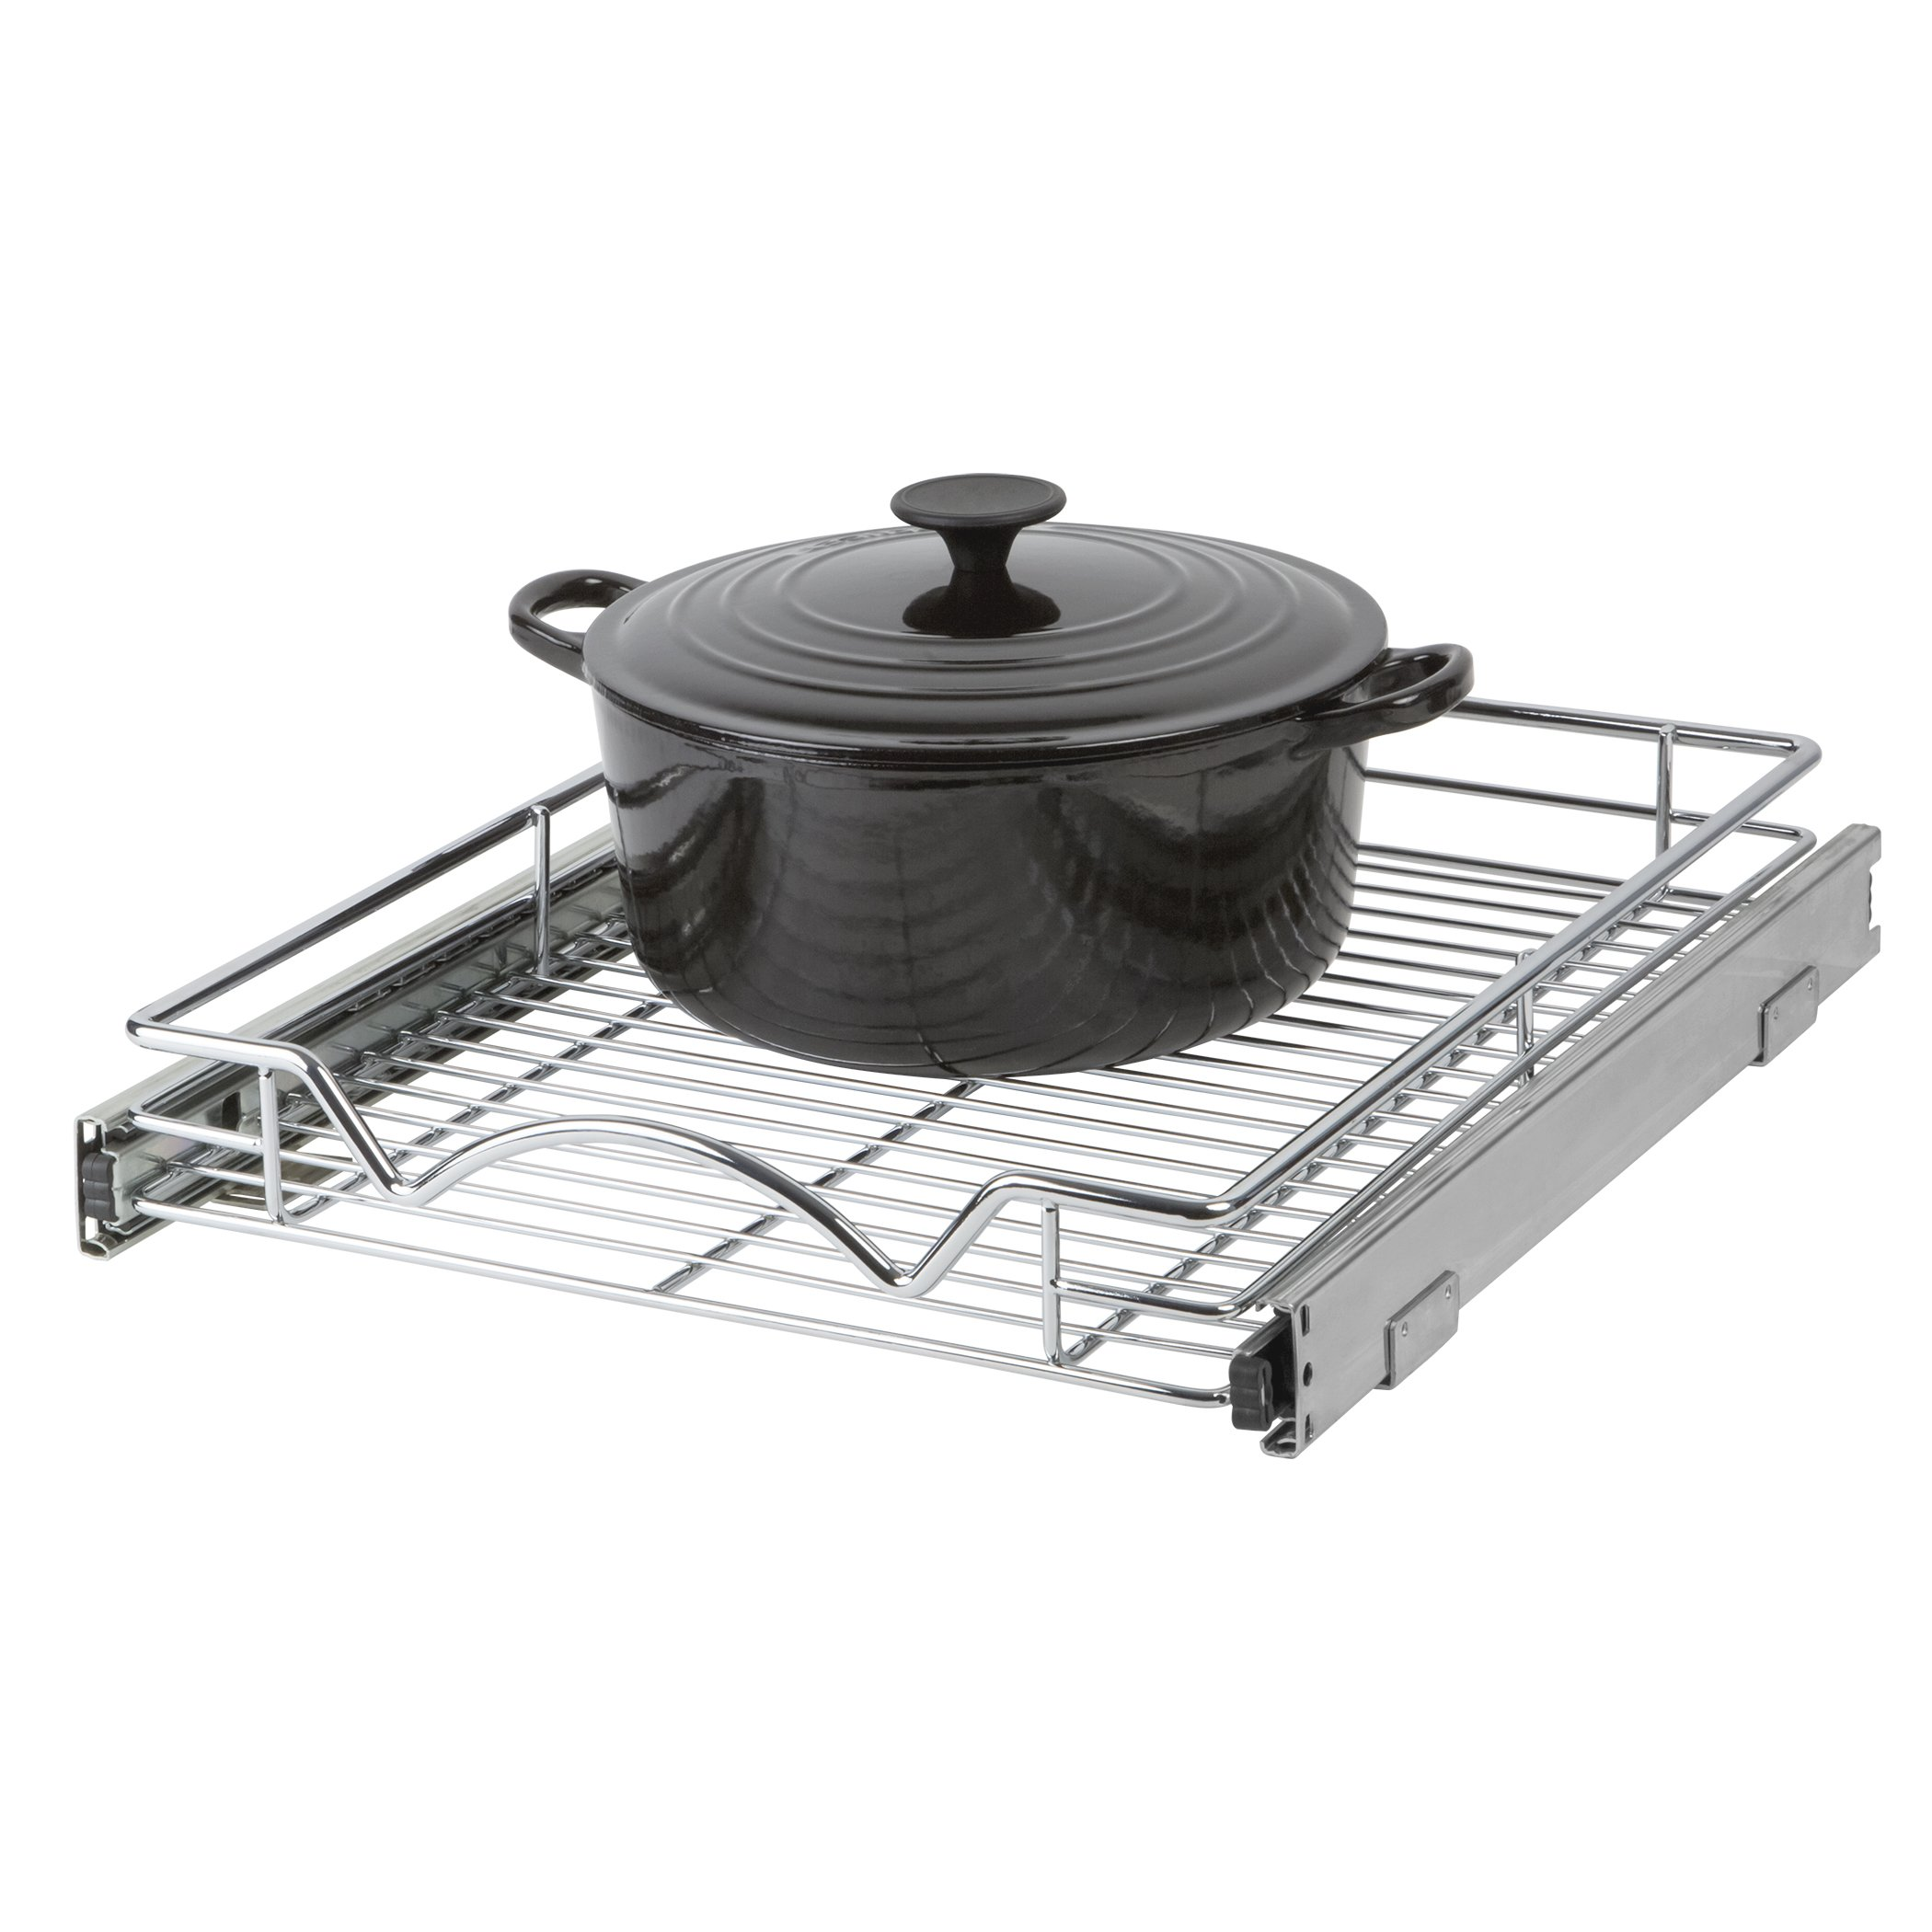 Slide Out Cabinet Organizer - Chrome 14x18'' Slide Out Kitchen Cabinet Organizer and Pull Out Under Cabinet Pots & Pans Sliding Shelf